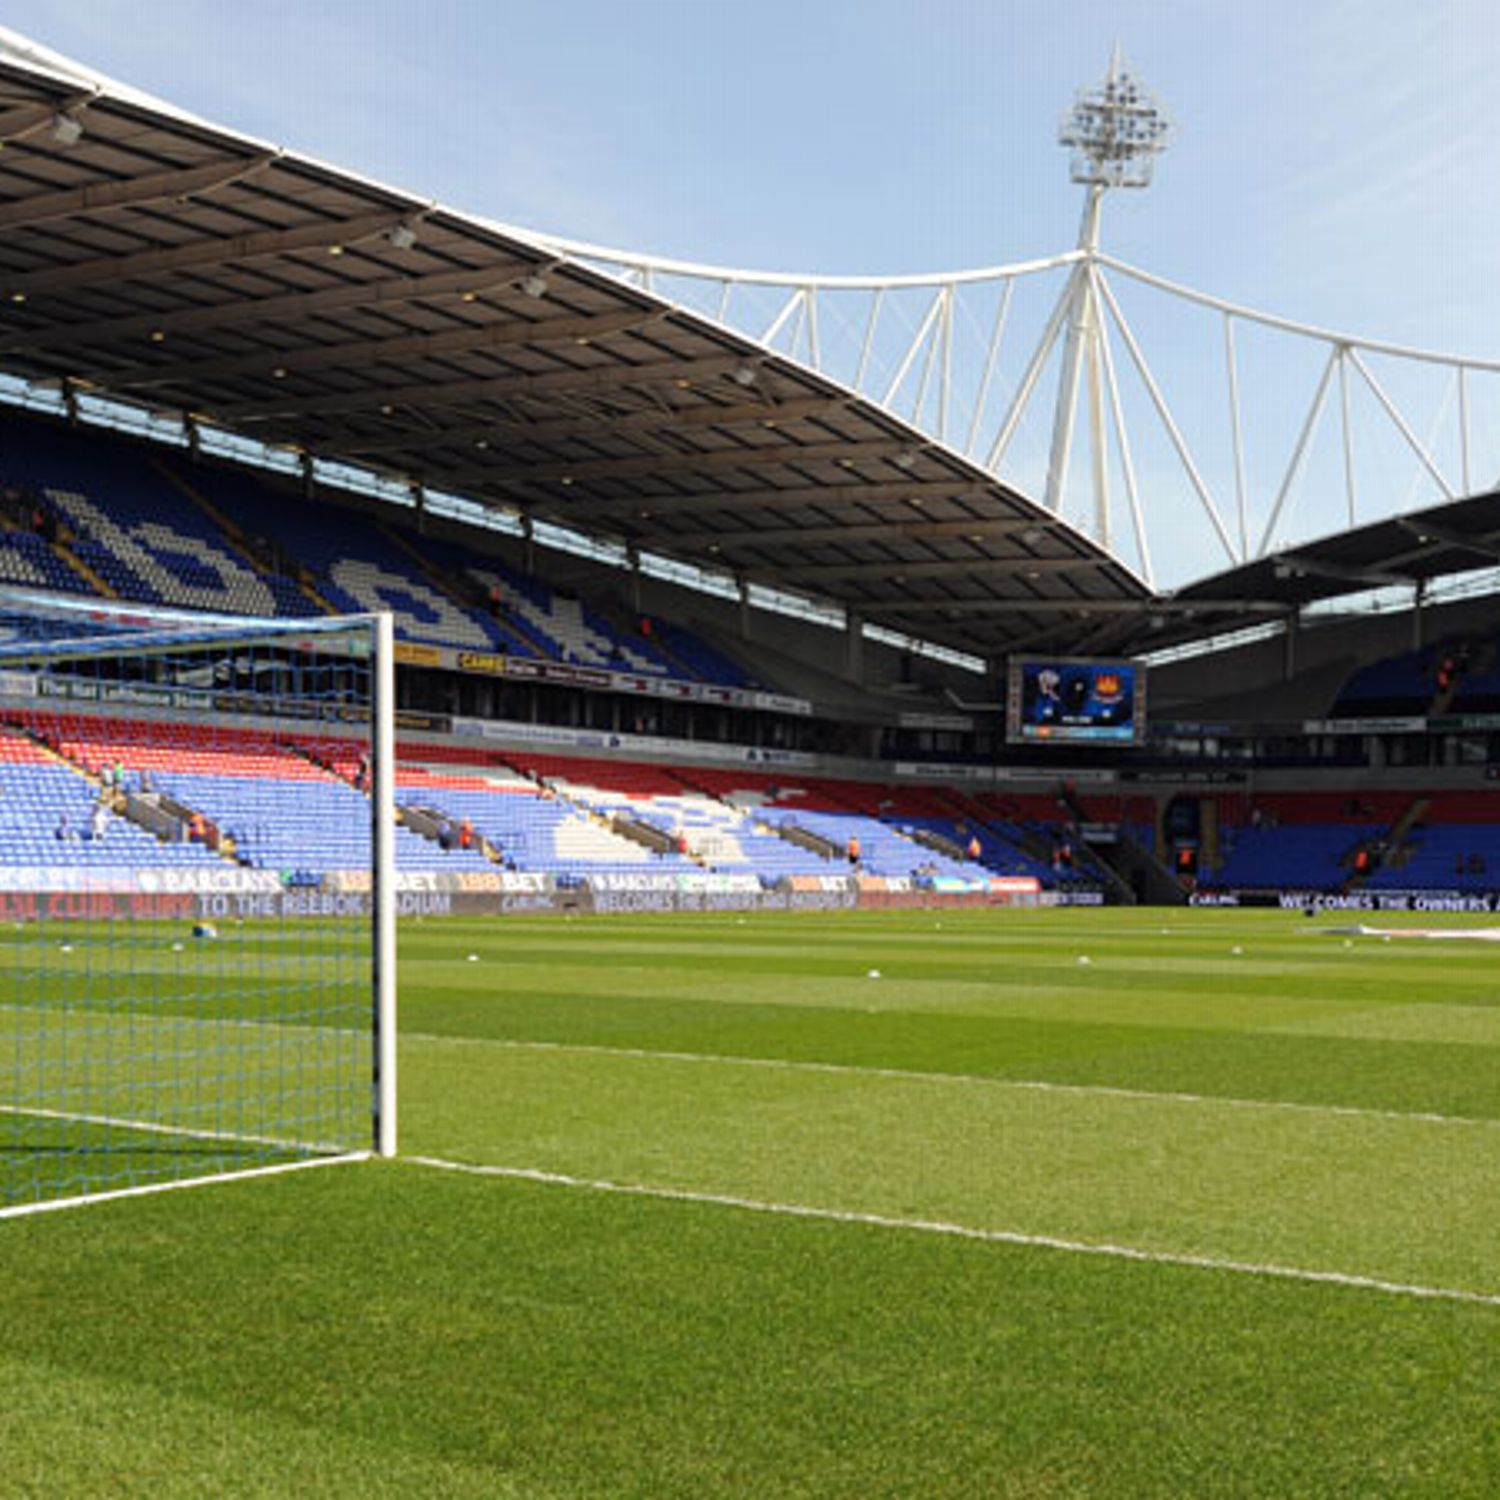 Epl Matches Live On Rcti Indonesia Tv Channel: Bolton First Team Squad Unpaid November Financial Crisis